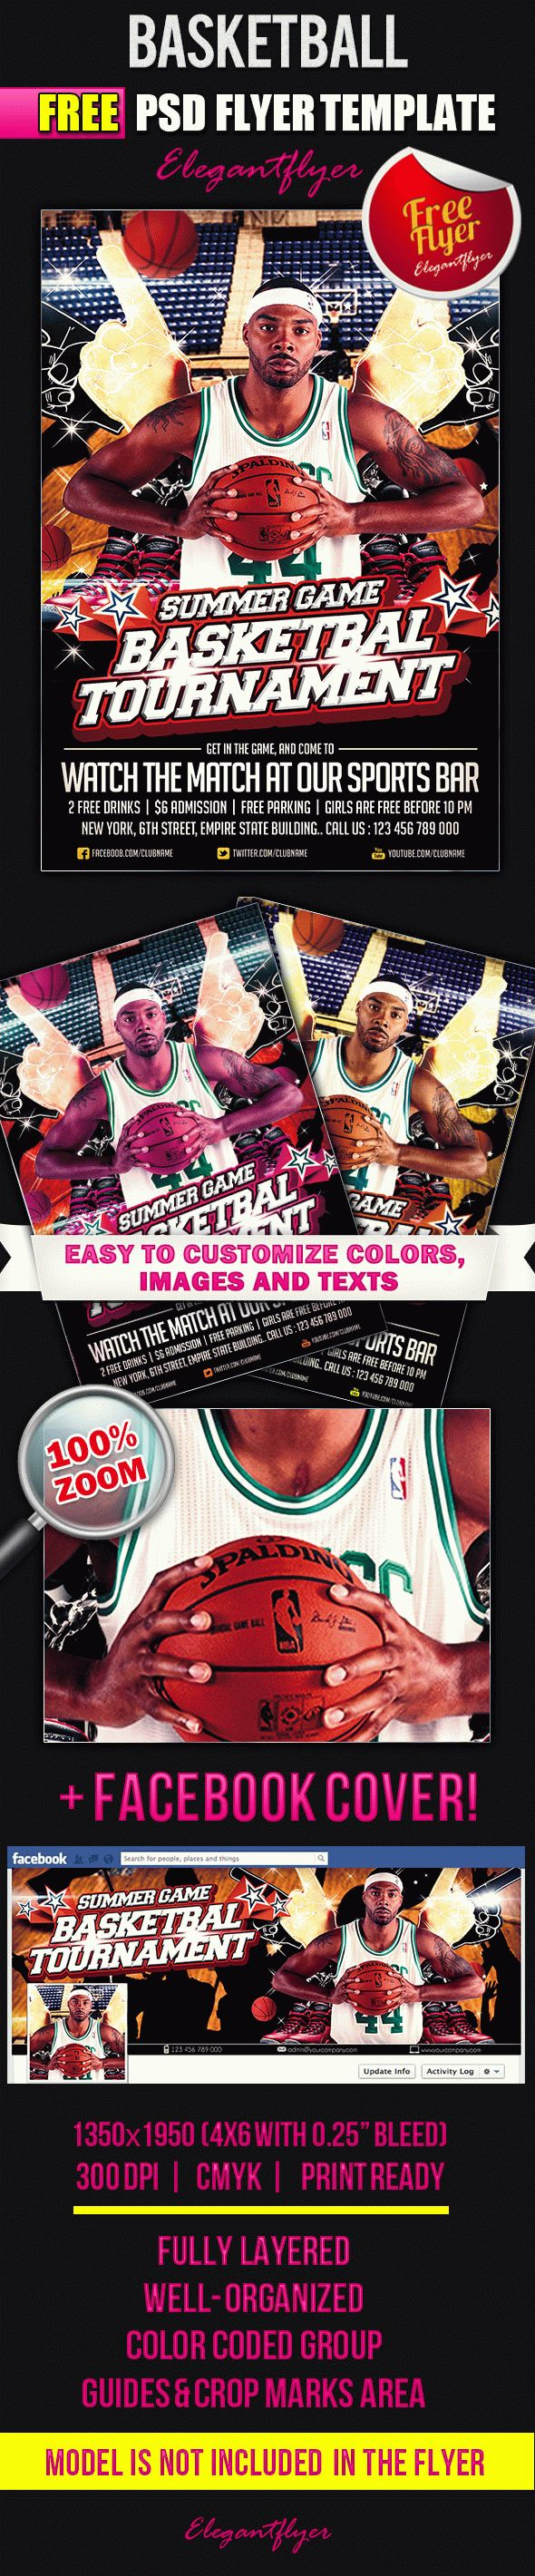 basketball flyer template free - basketball flyer psd template facebook cover by